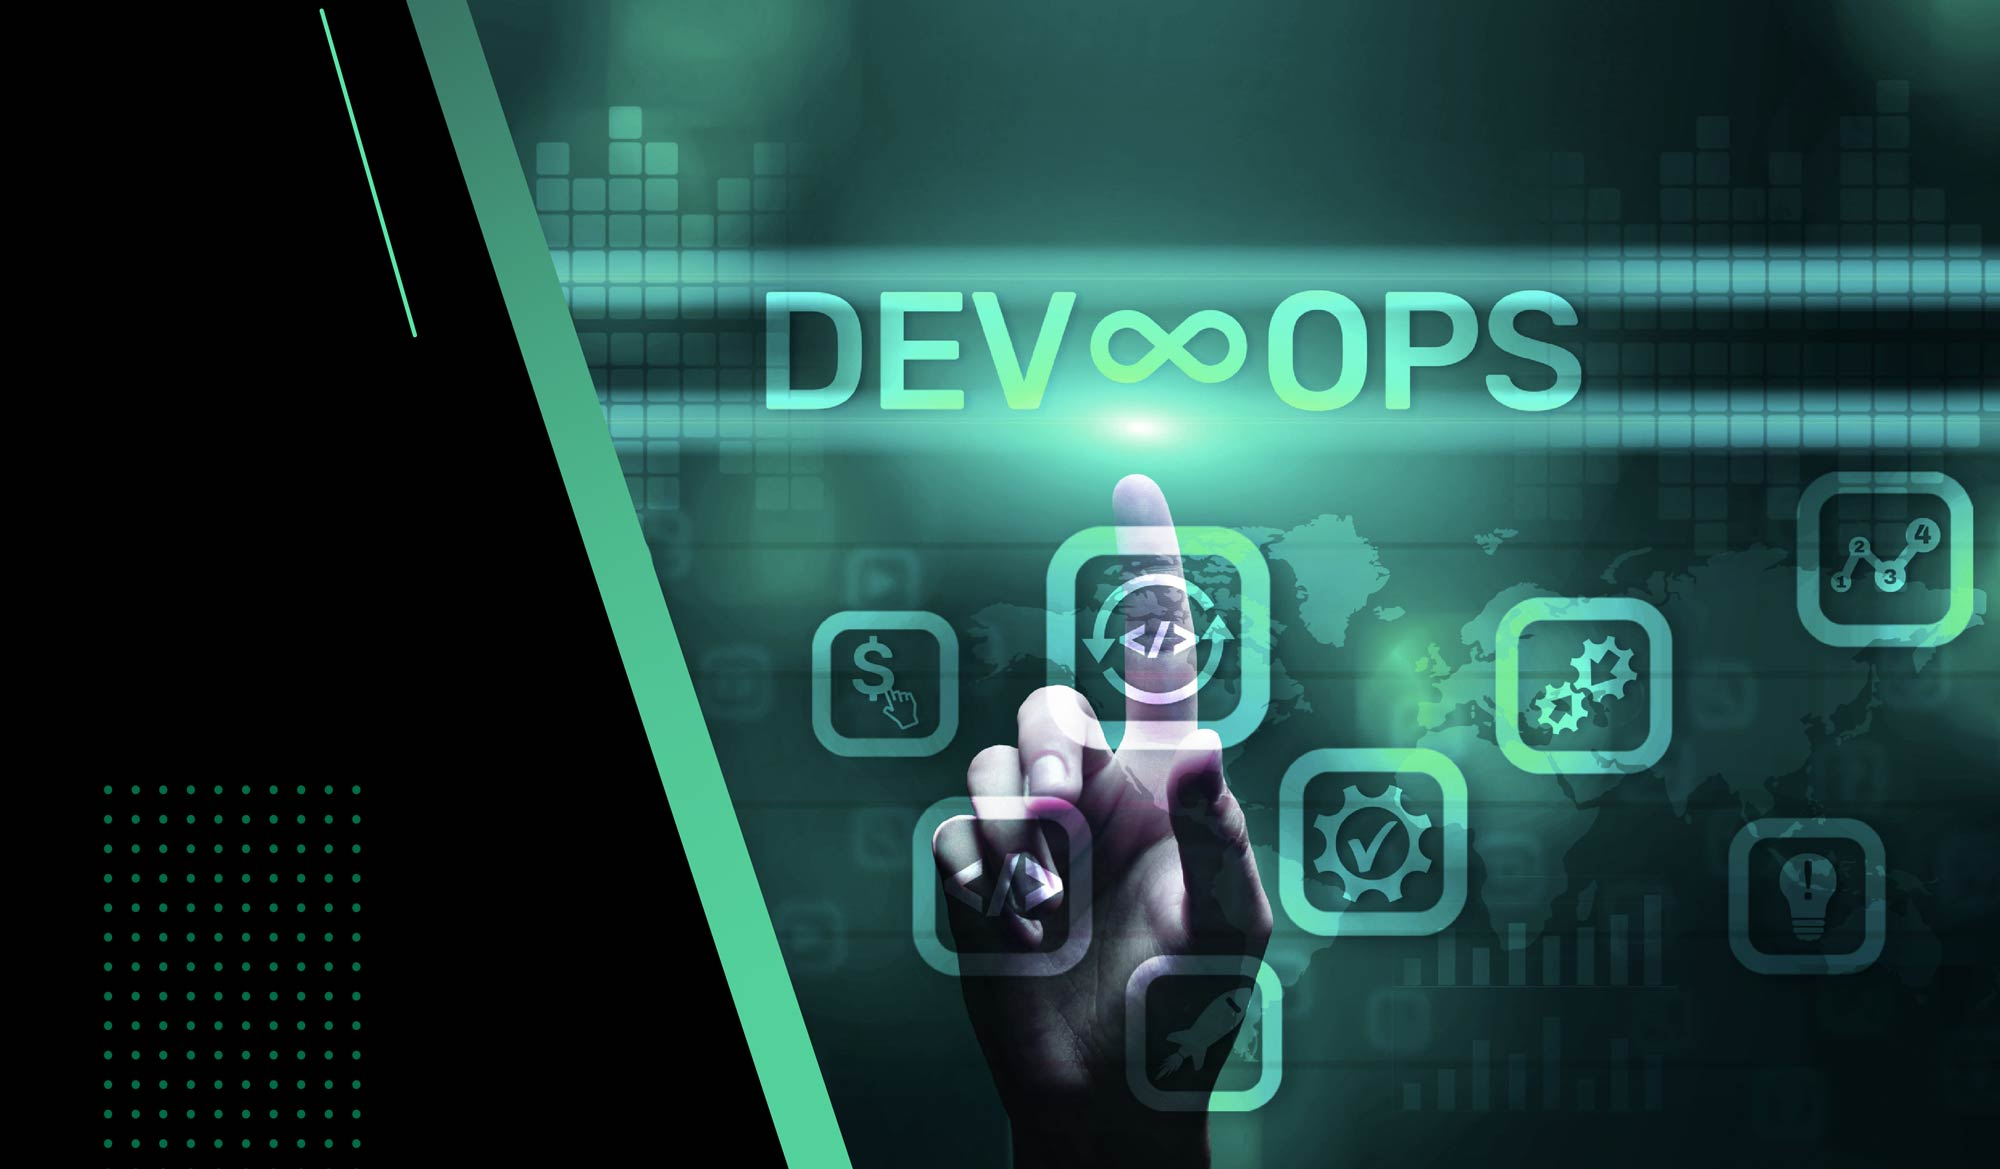 Why is DevOps important for business?